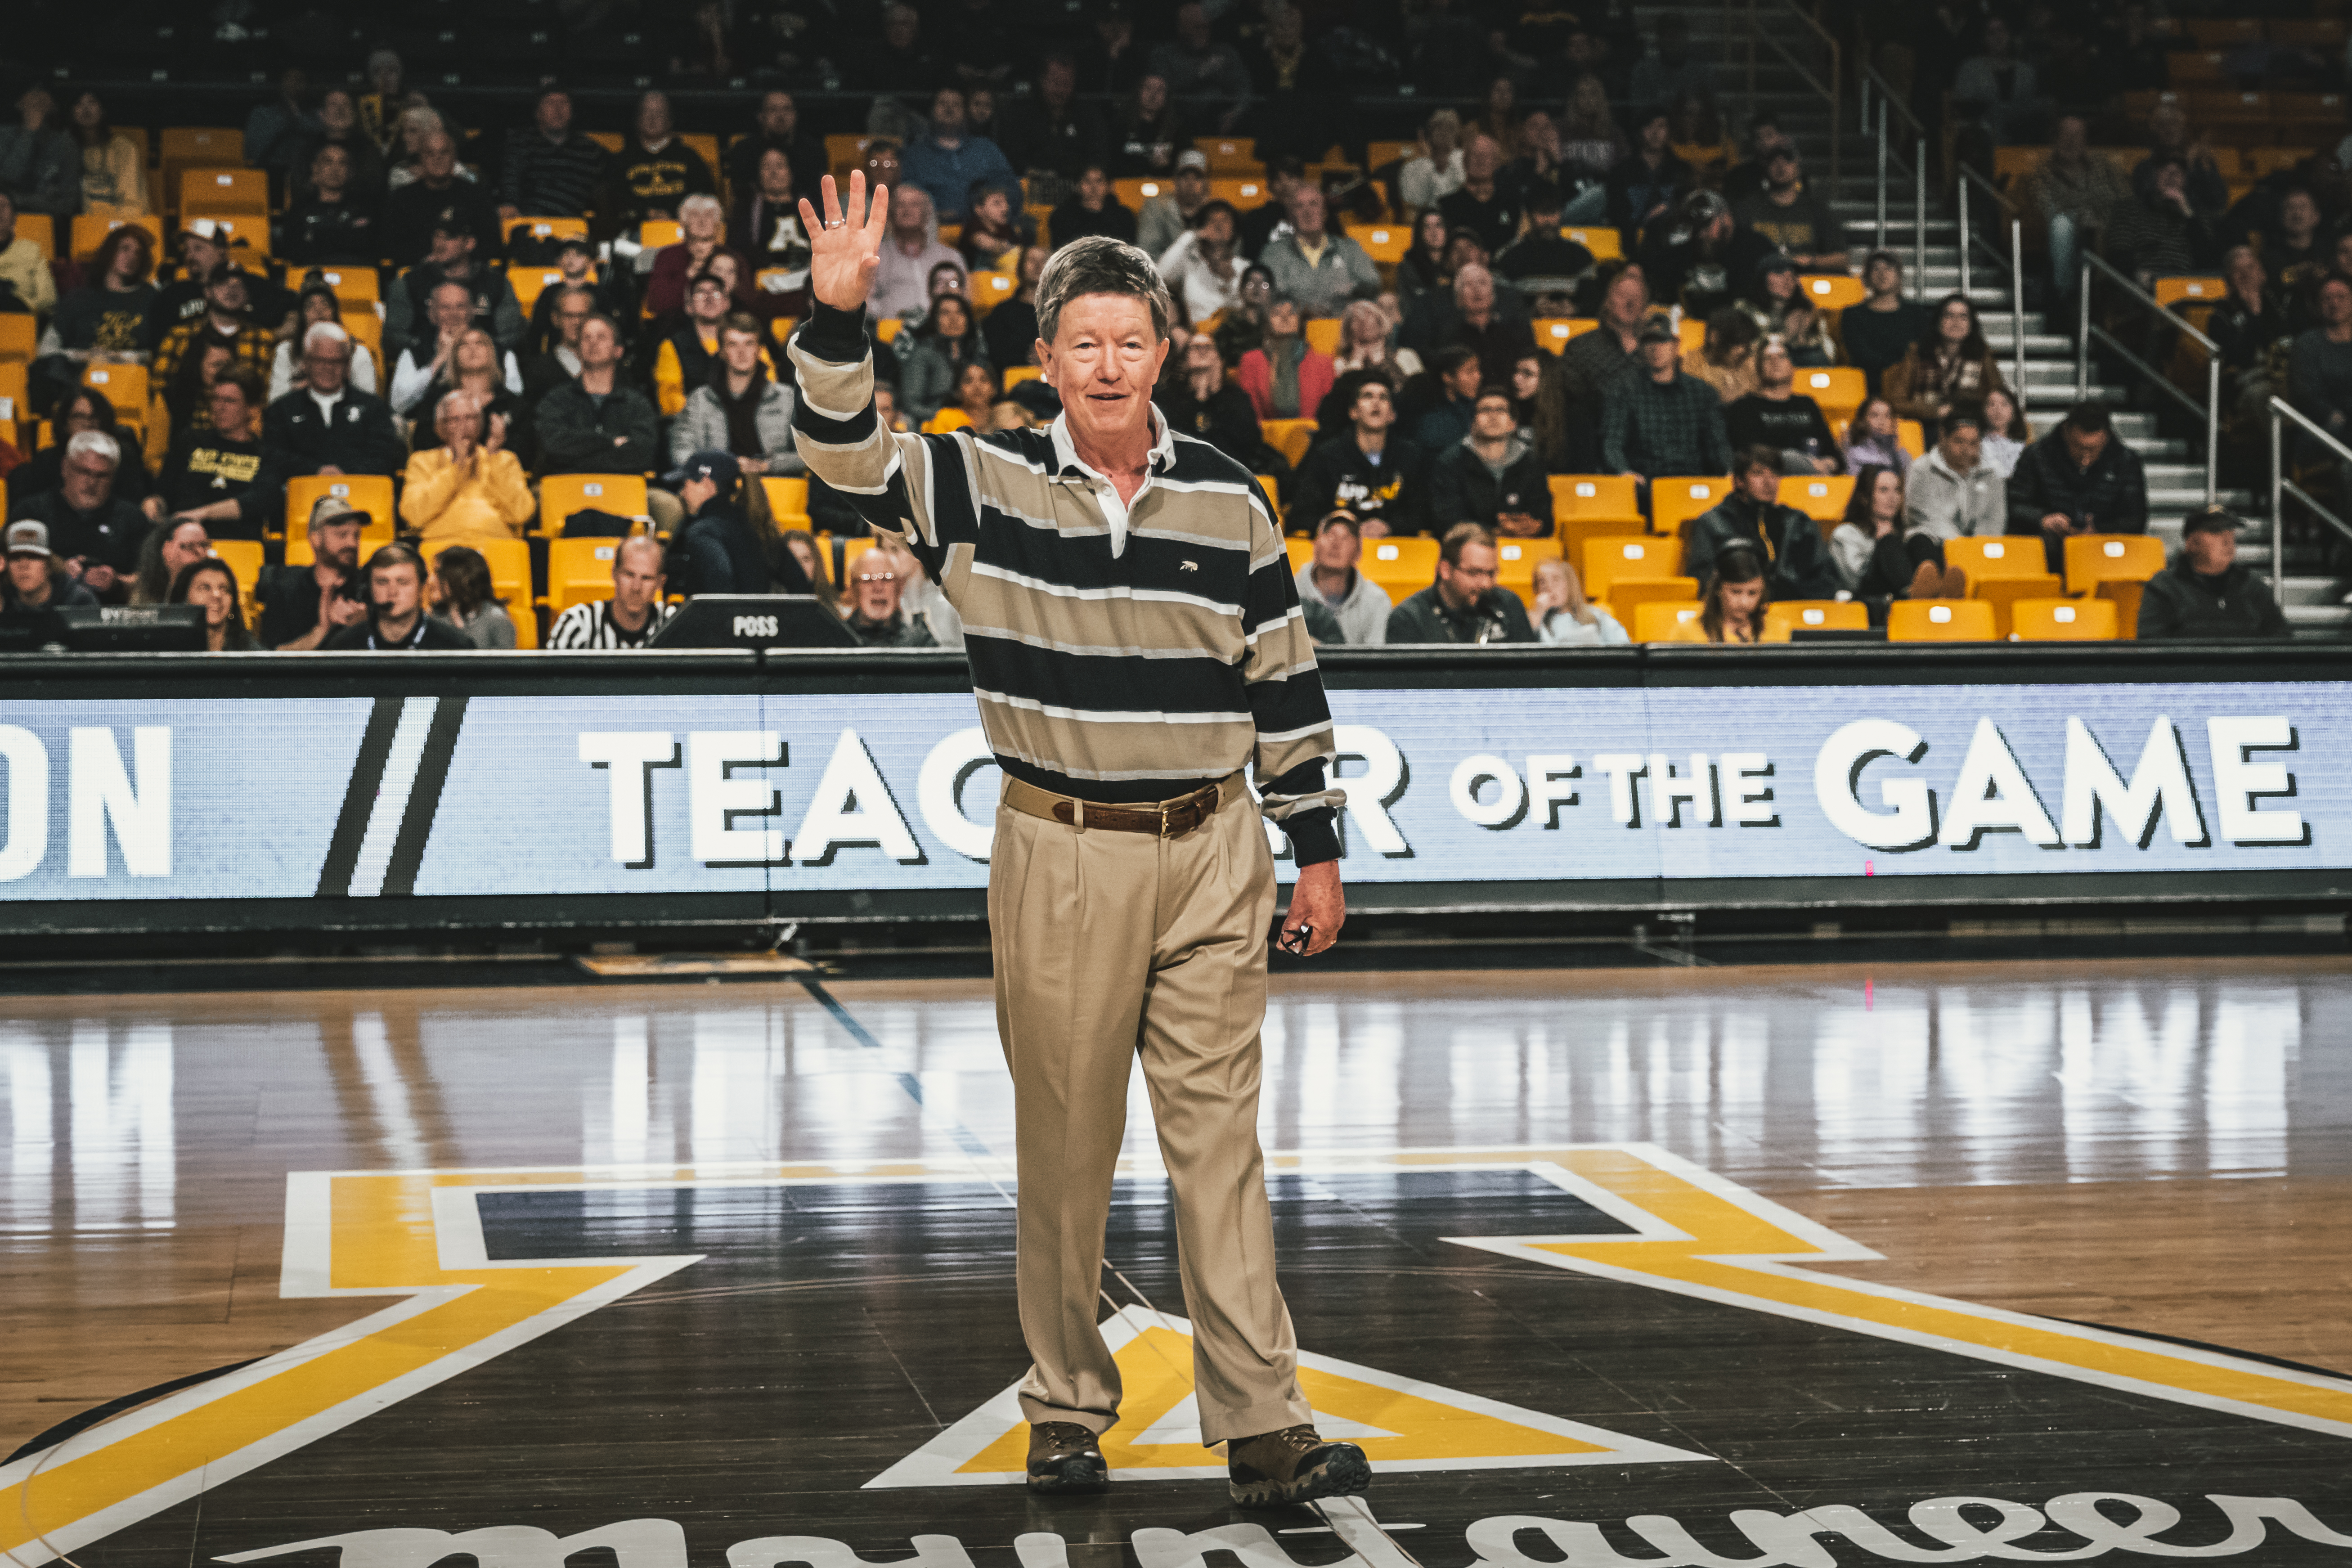 Teacher of the Game Dana Clark at App State's February 8, 2020 Basketball Game